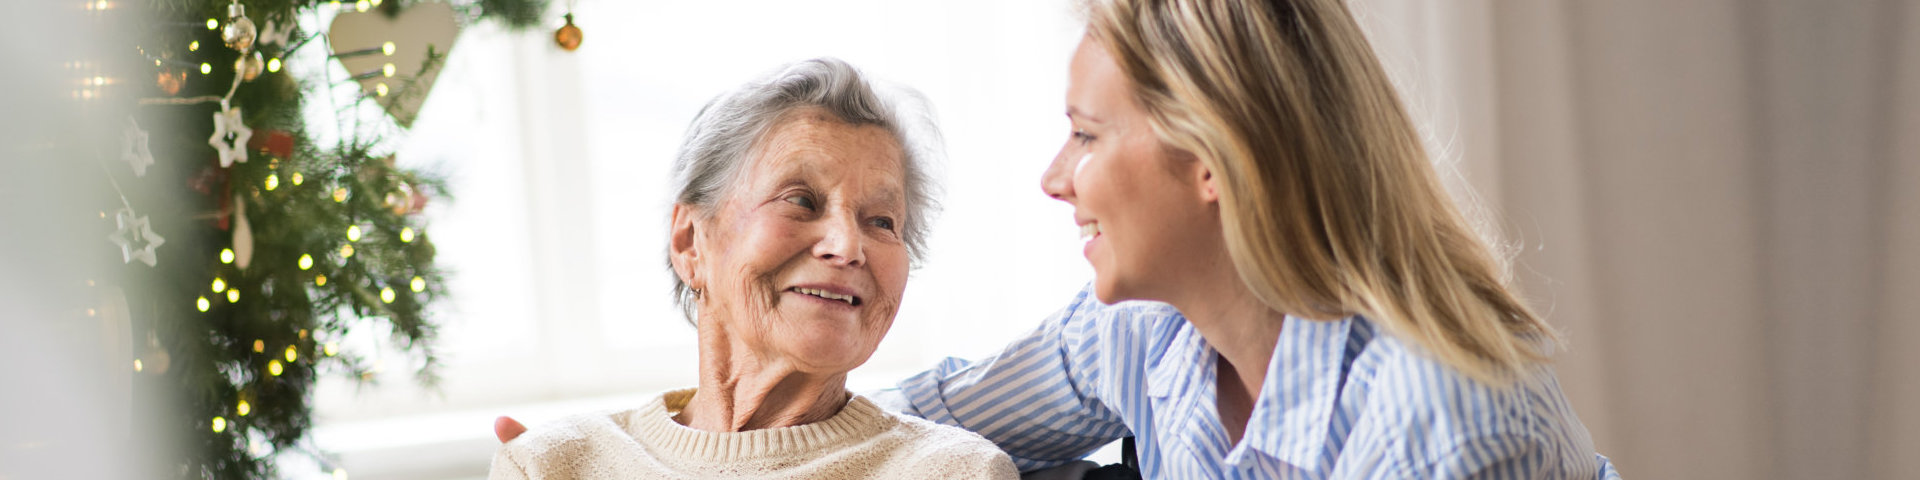 senior woman with a health visitor